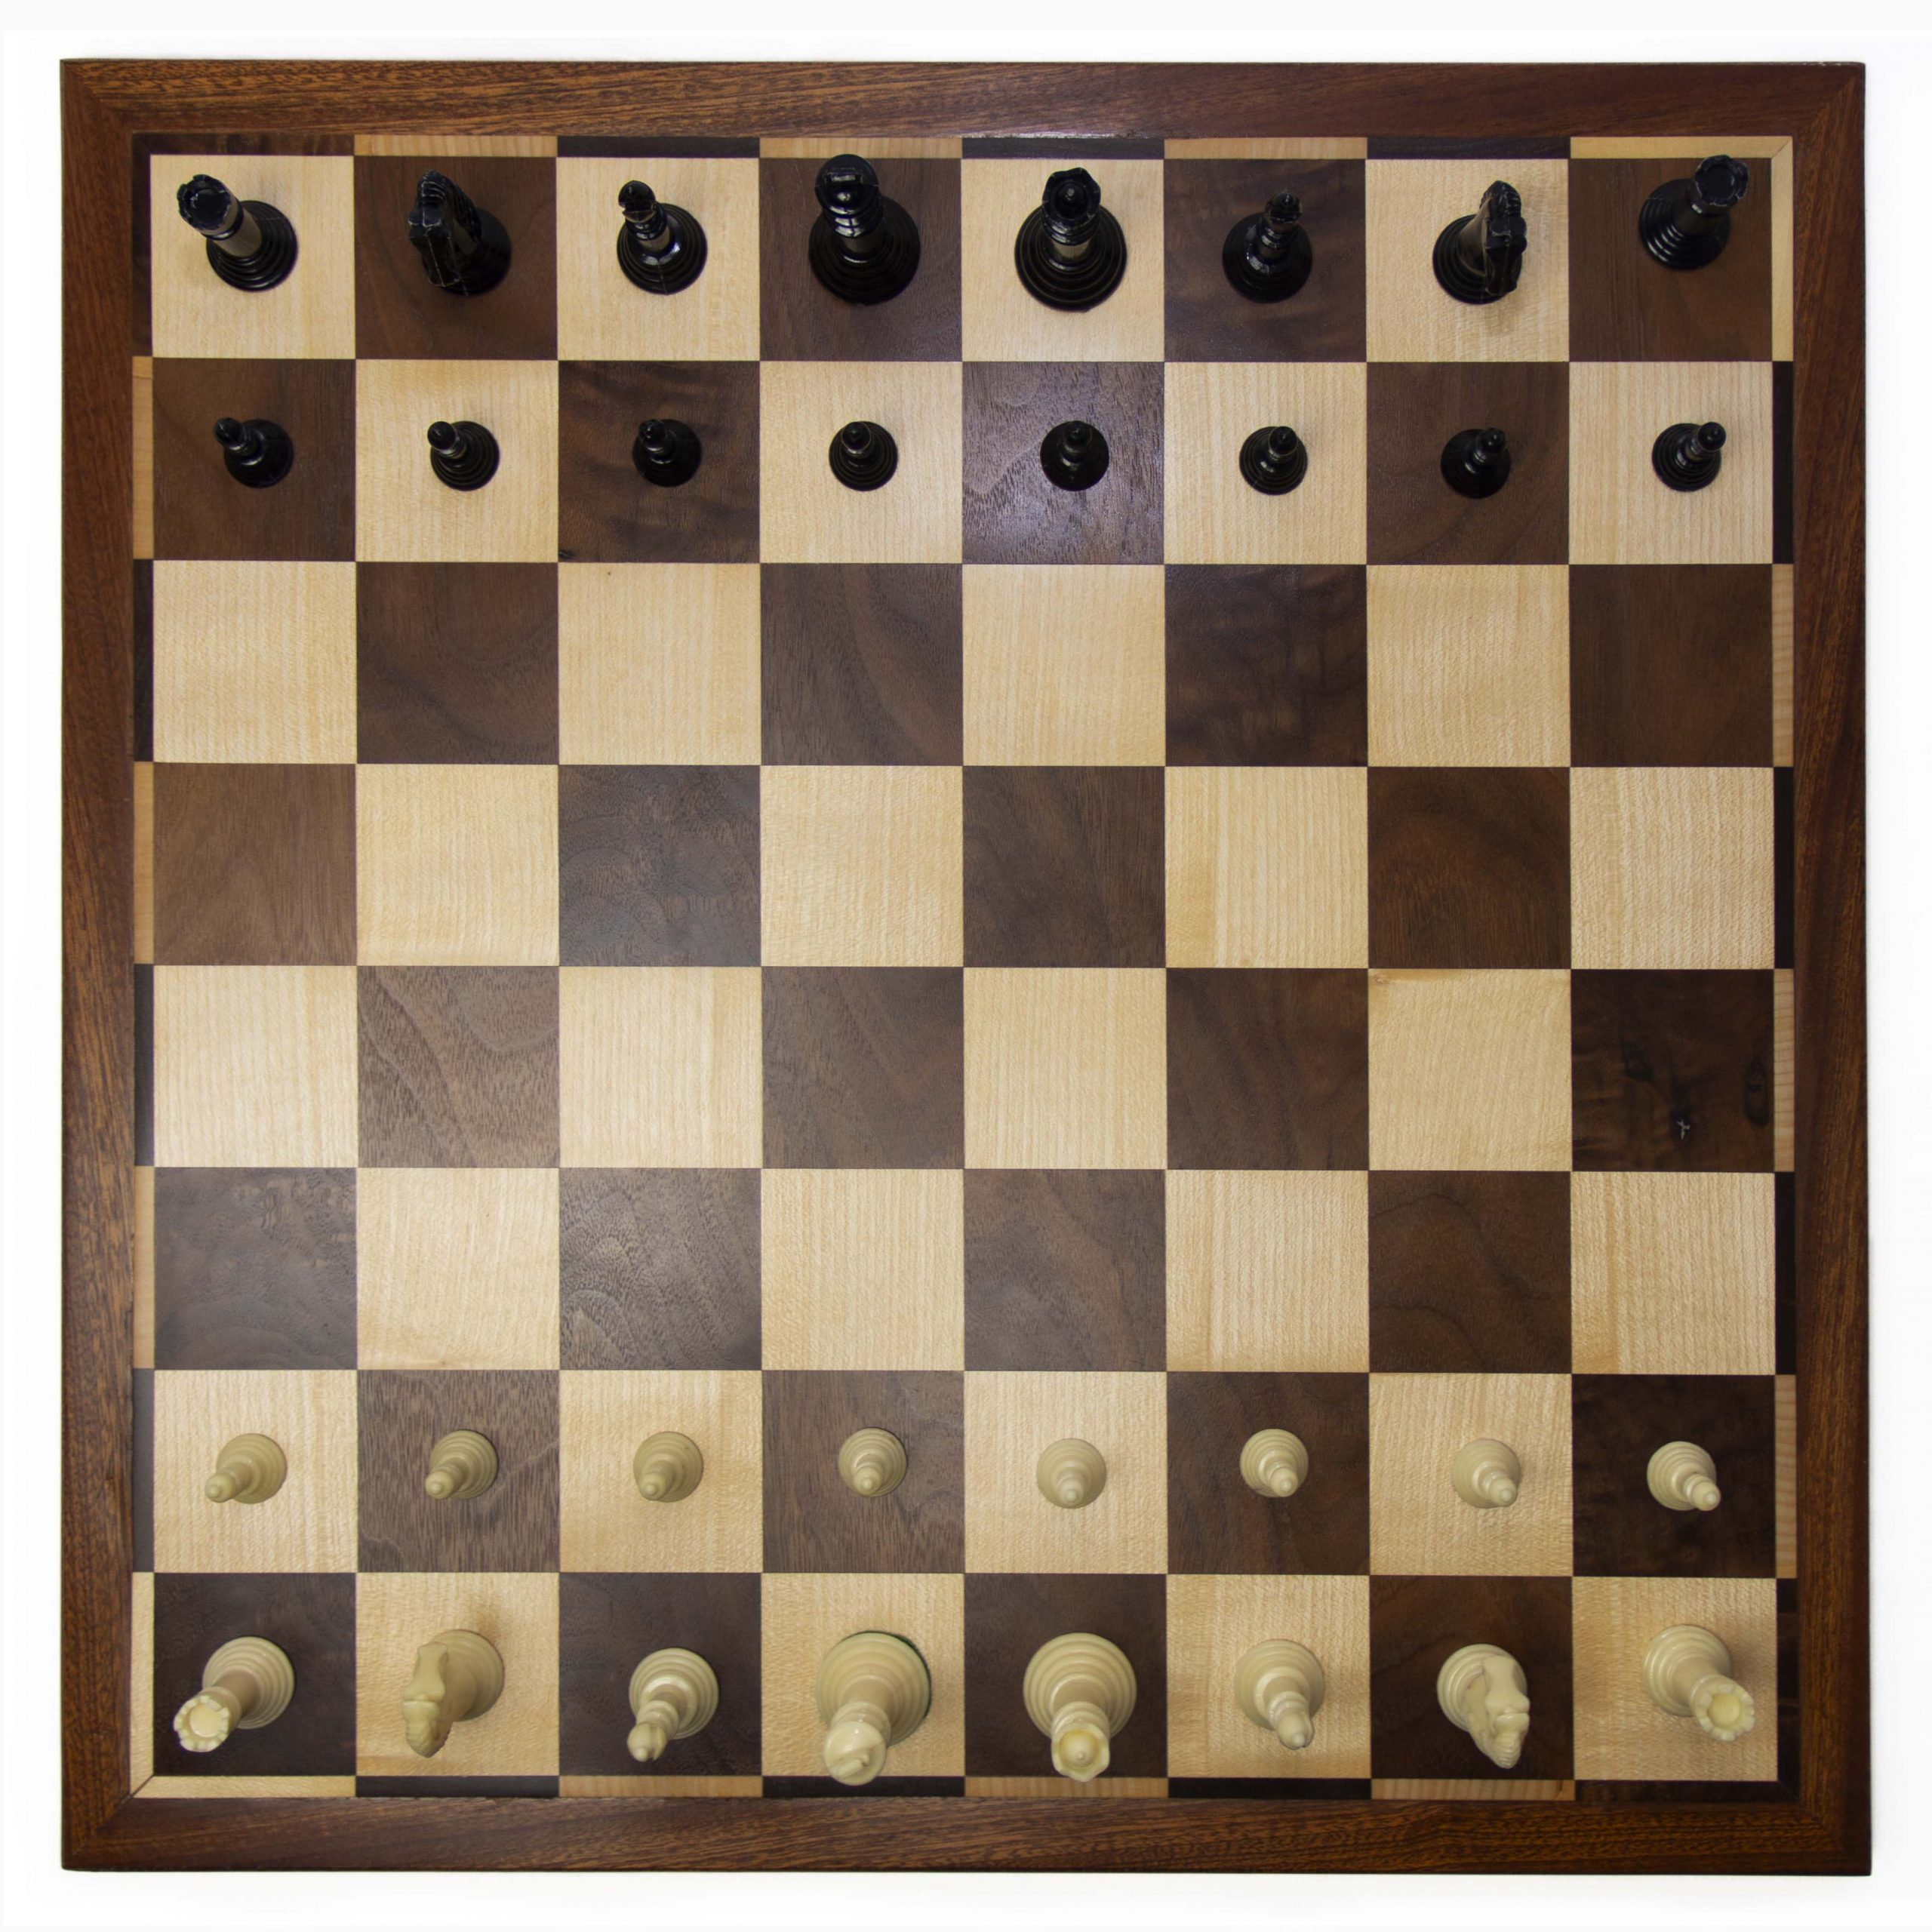 Walnut and Sycamore solid-wood pattern Chess Board (2019)